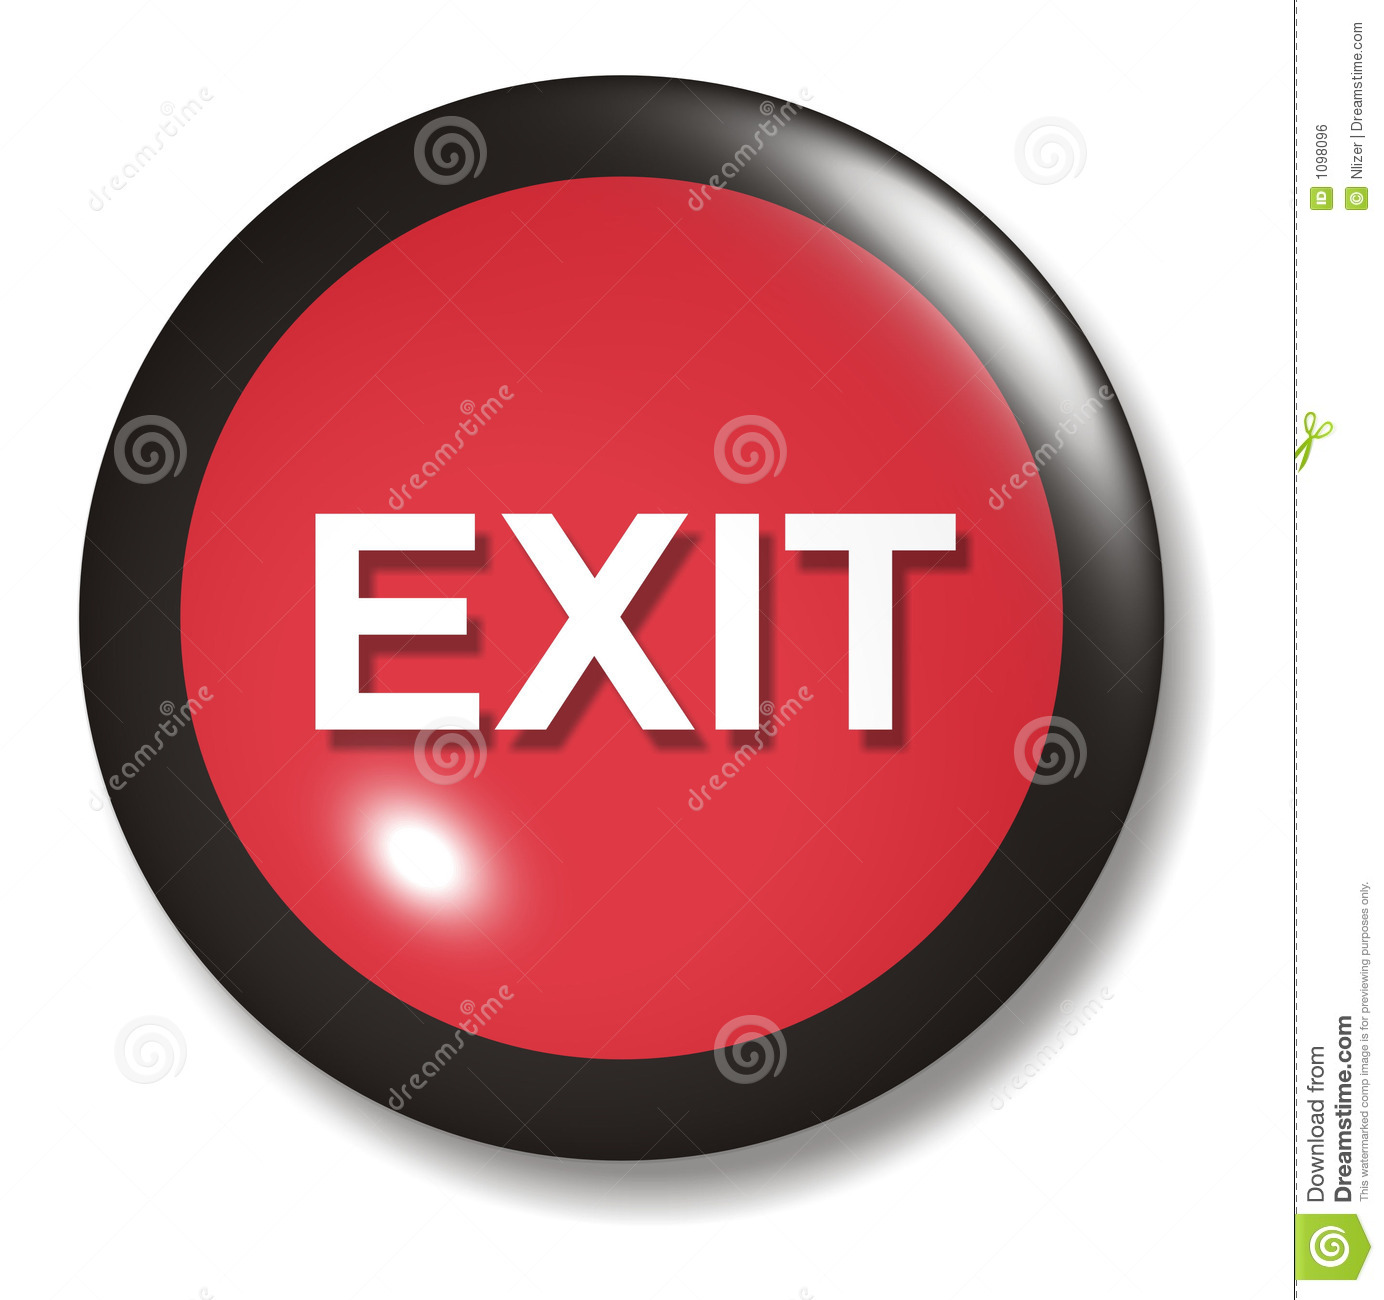 Exit Button Icon on coloring map of the united states